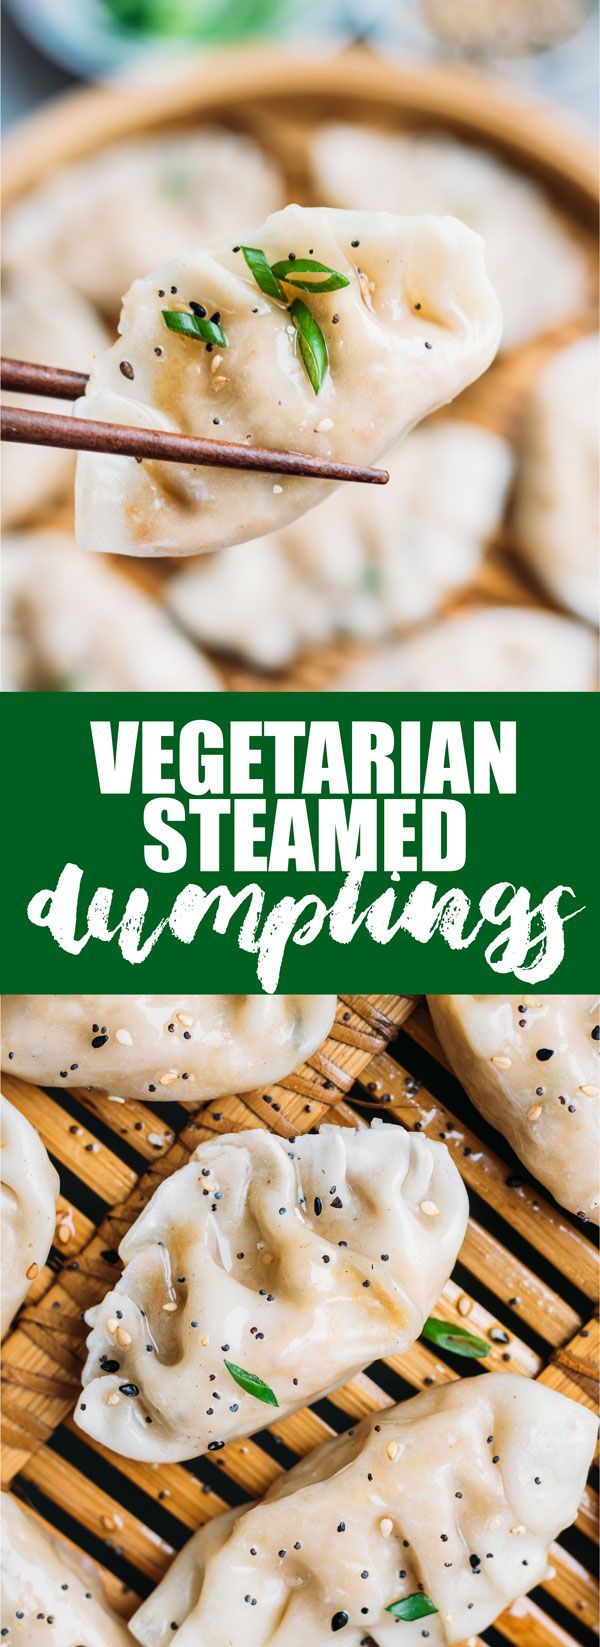 These vegetarian steamed dumplings are loaded with healthy veggies & tofu, and are so easy to make! You'll never buy dumplings again!